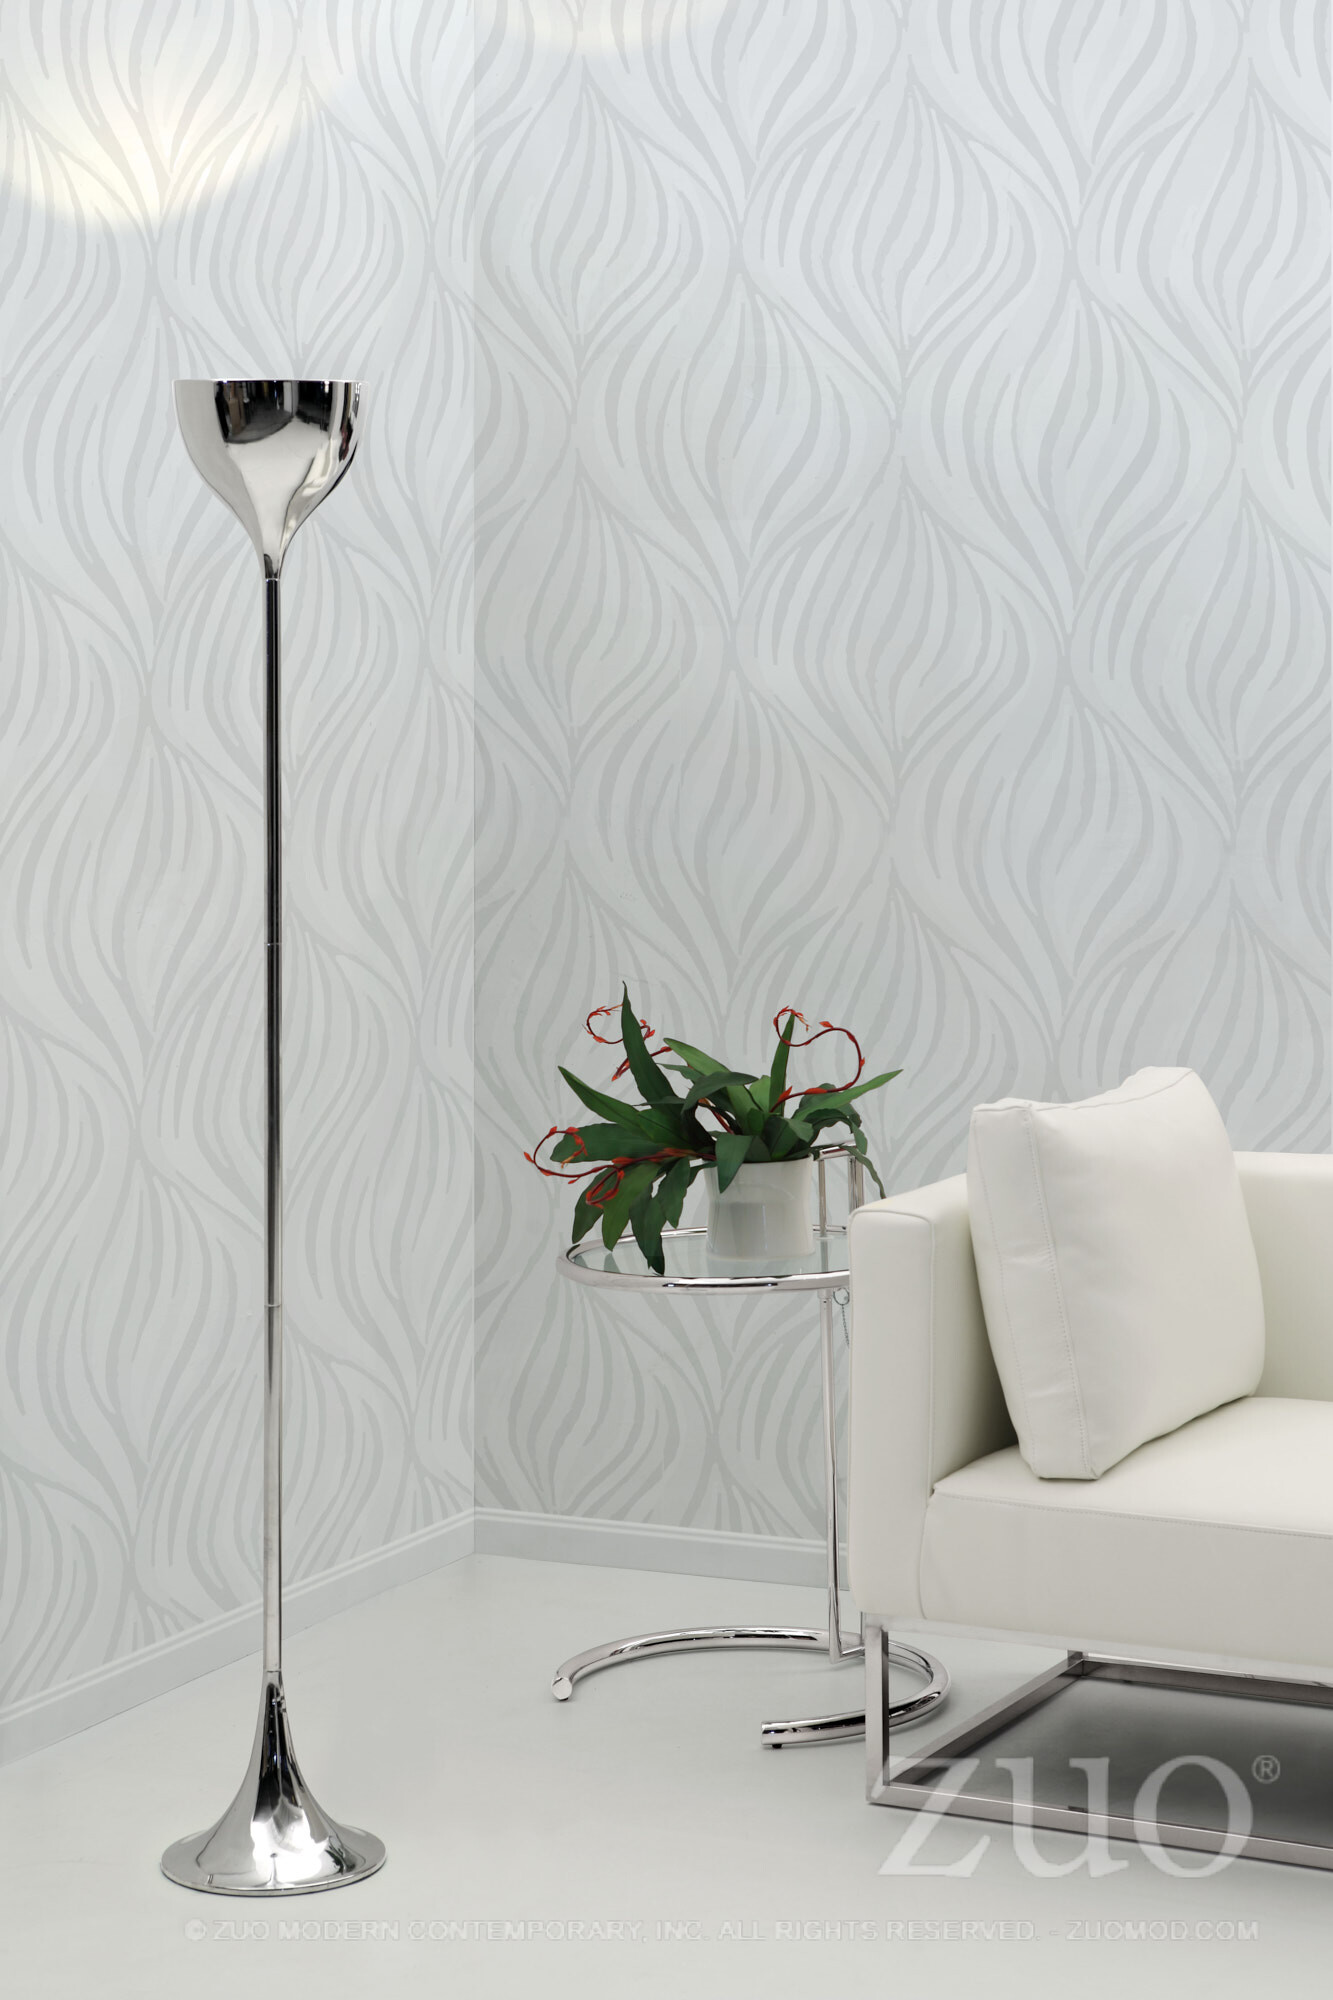 50013 Neutrino Floor Lamp